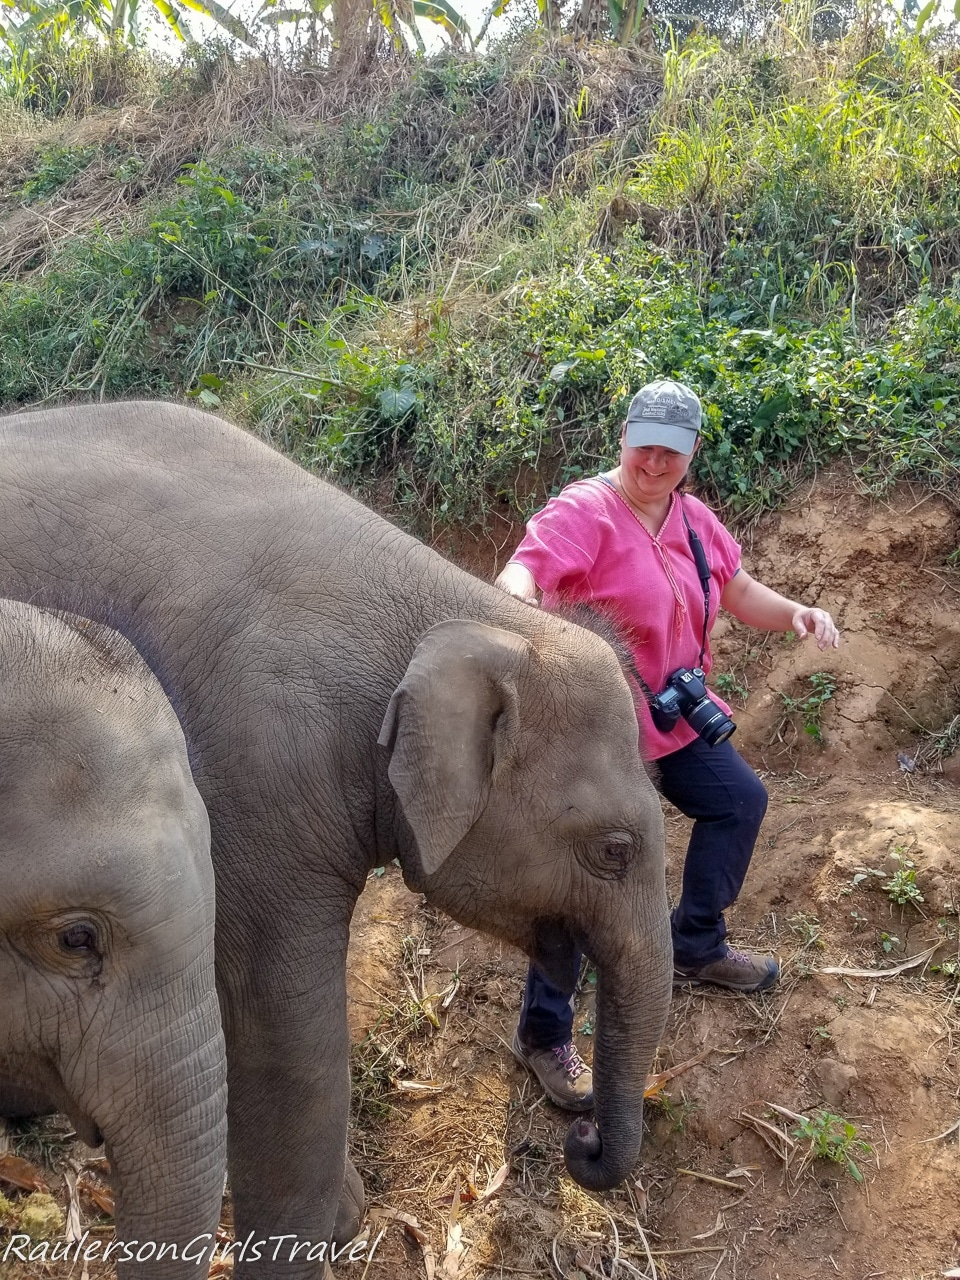 Heather getting out of the way of the baby elephant